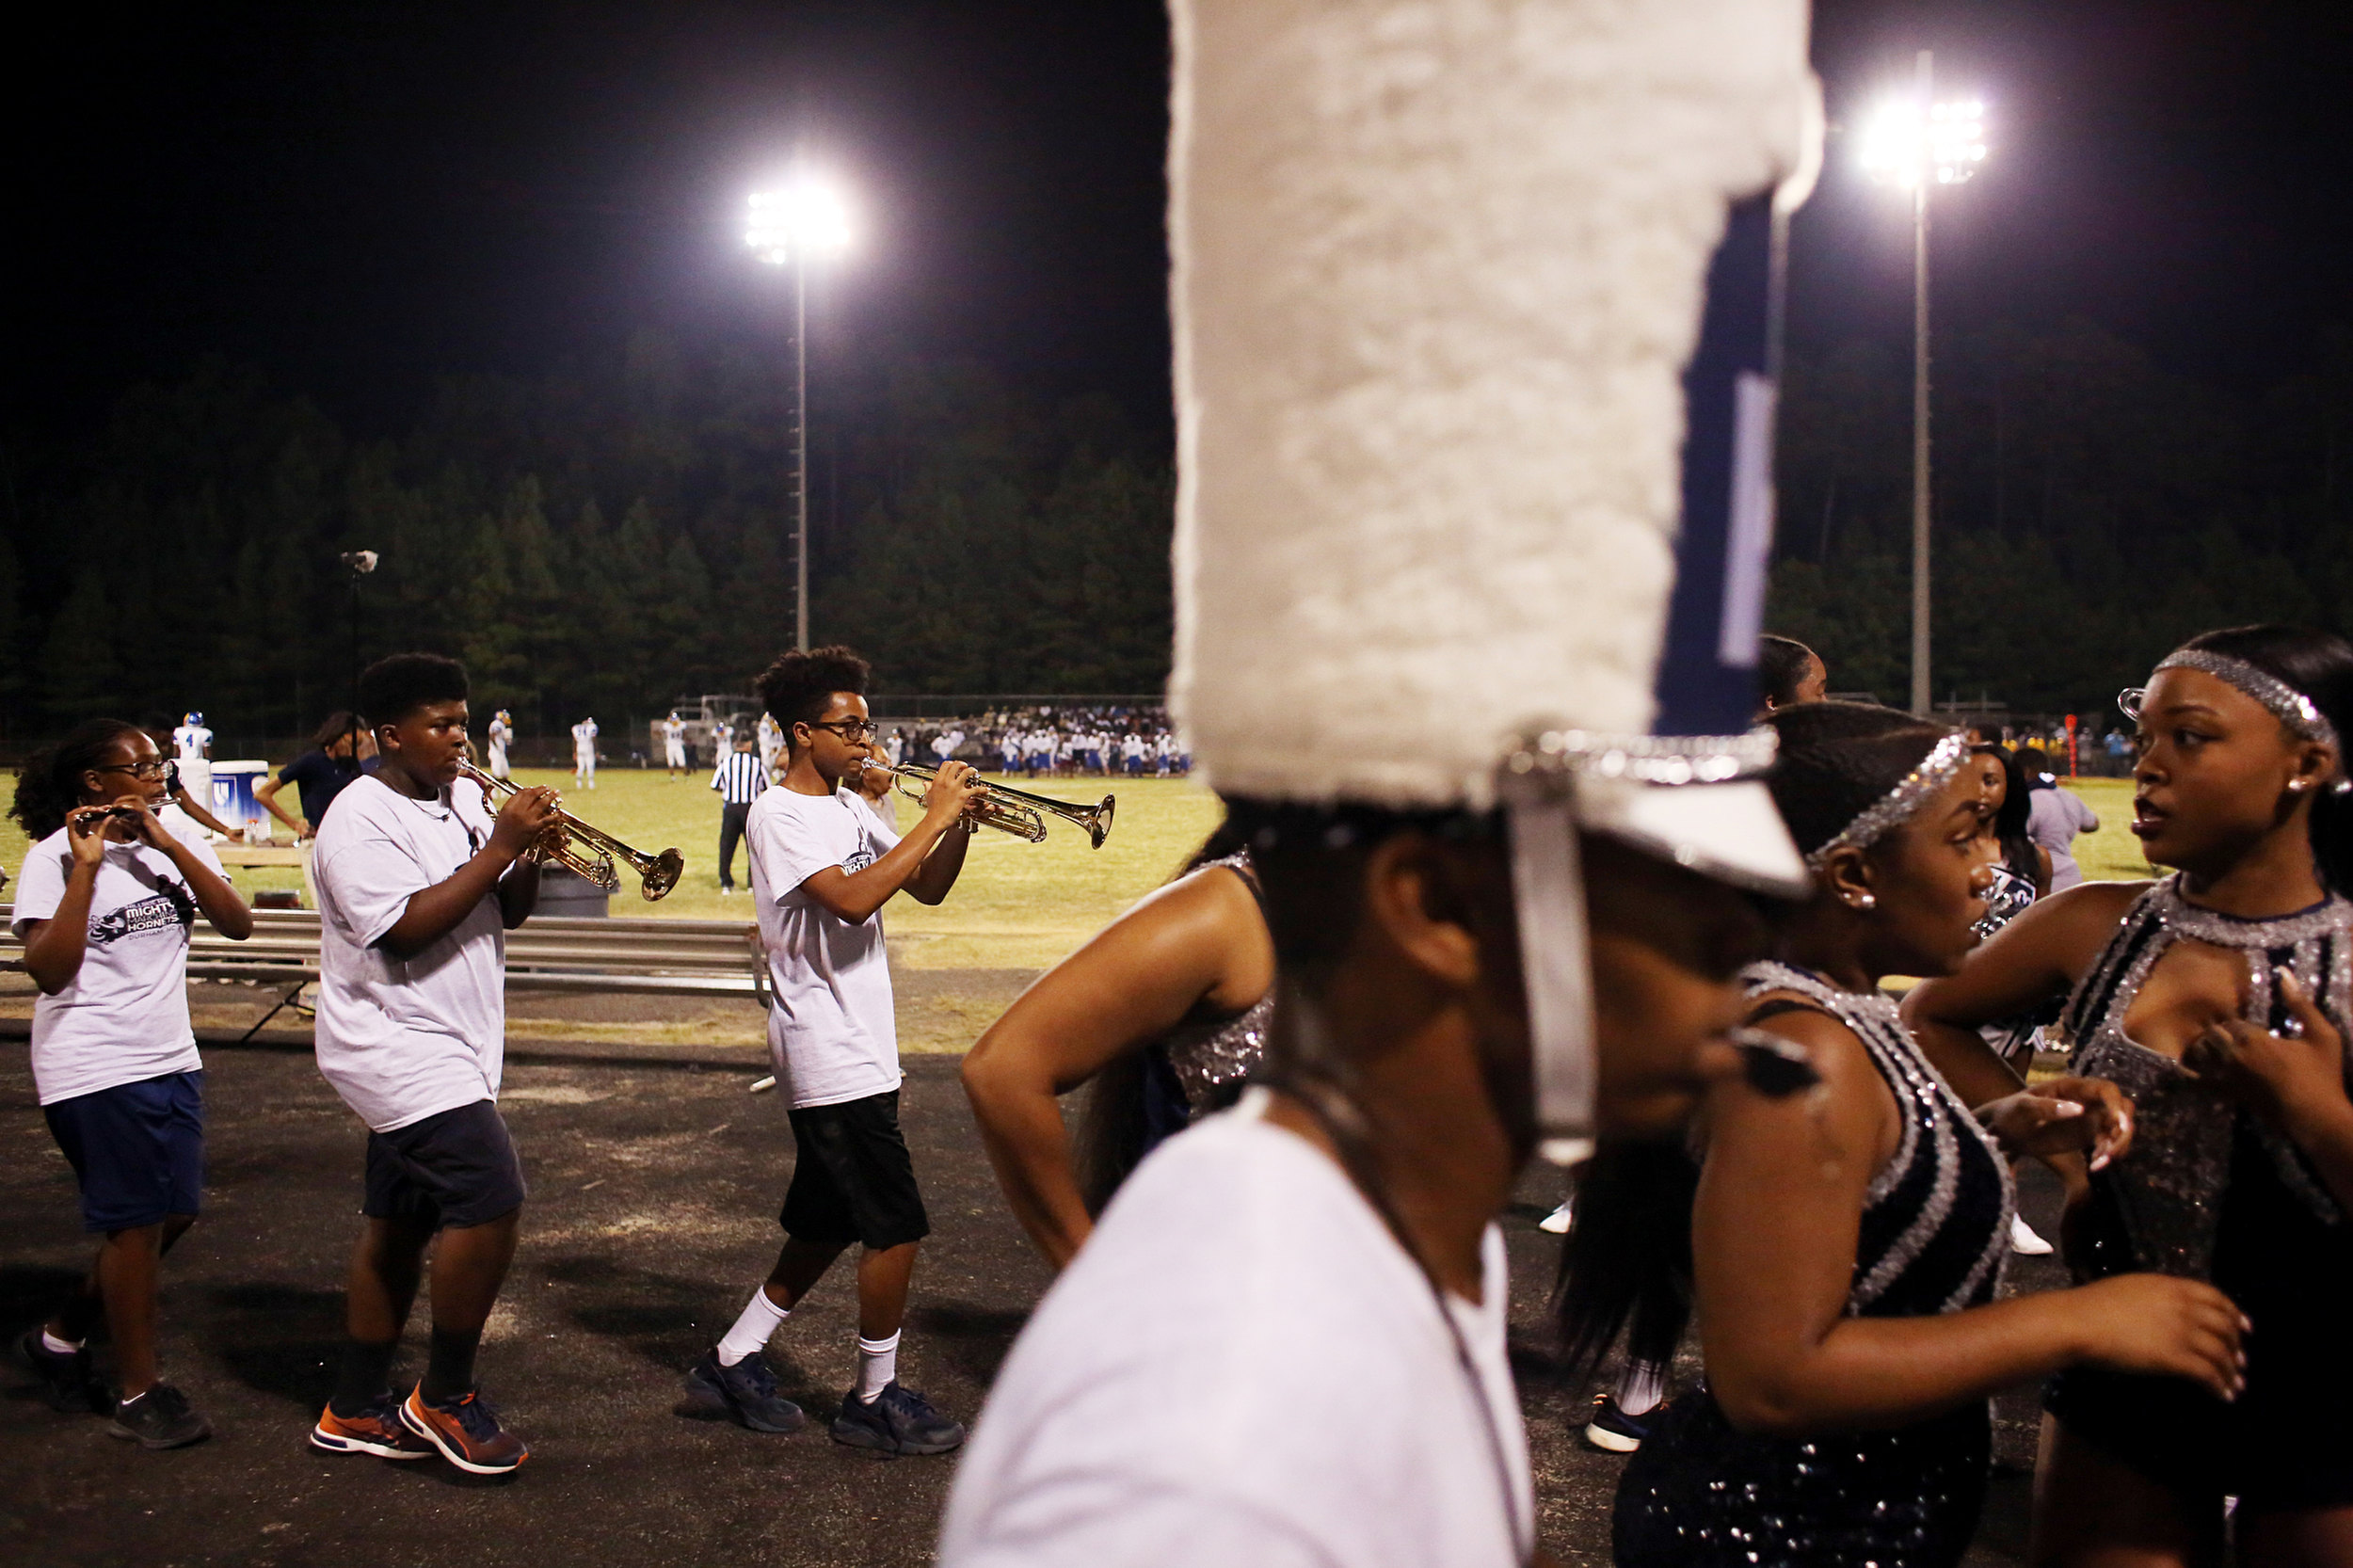 Members of the Hillside High School band and dance team perform during halftime of a football game, September 9, 2016, at Hillside High School.